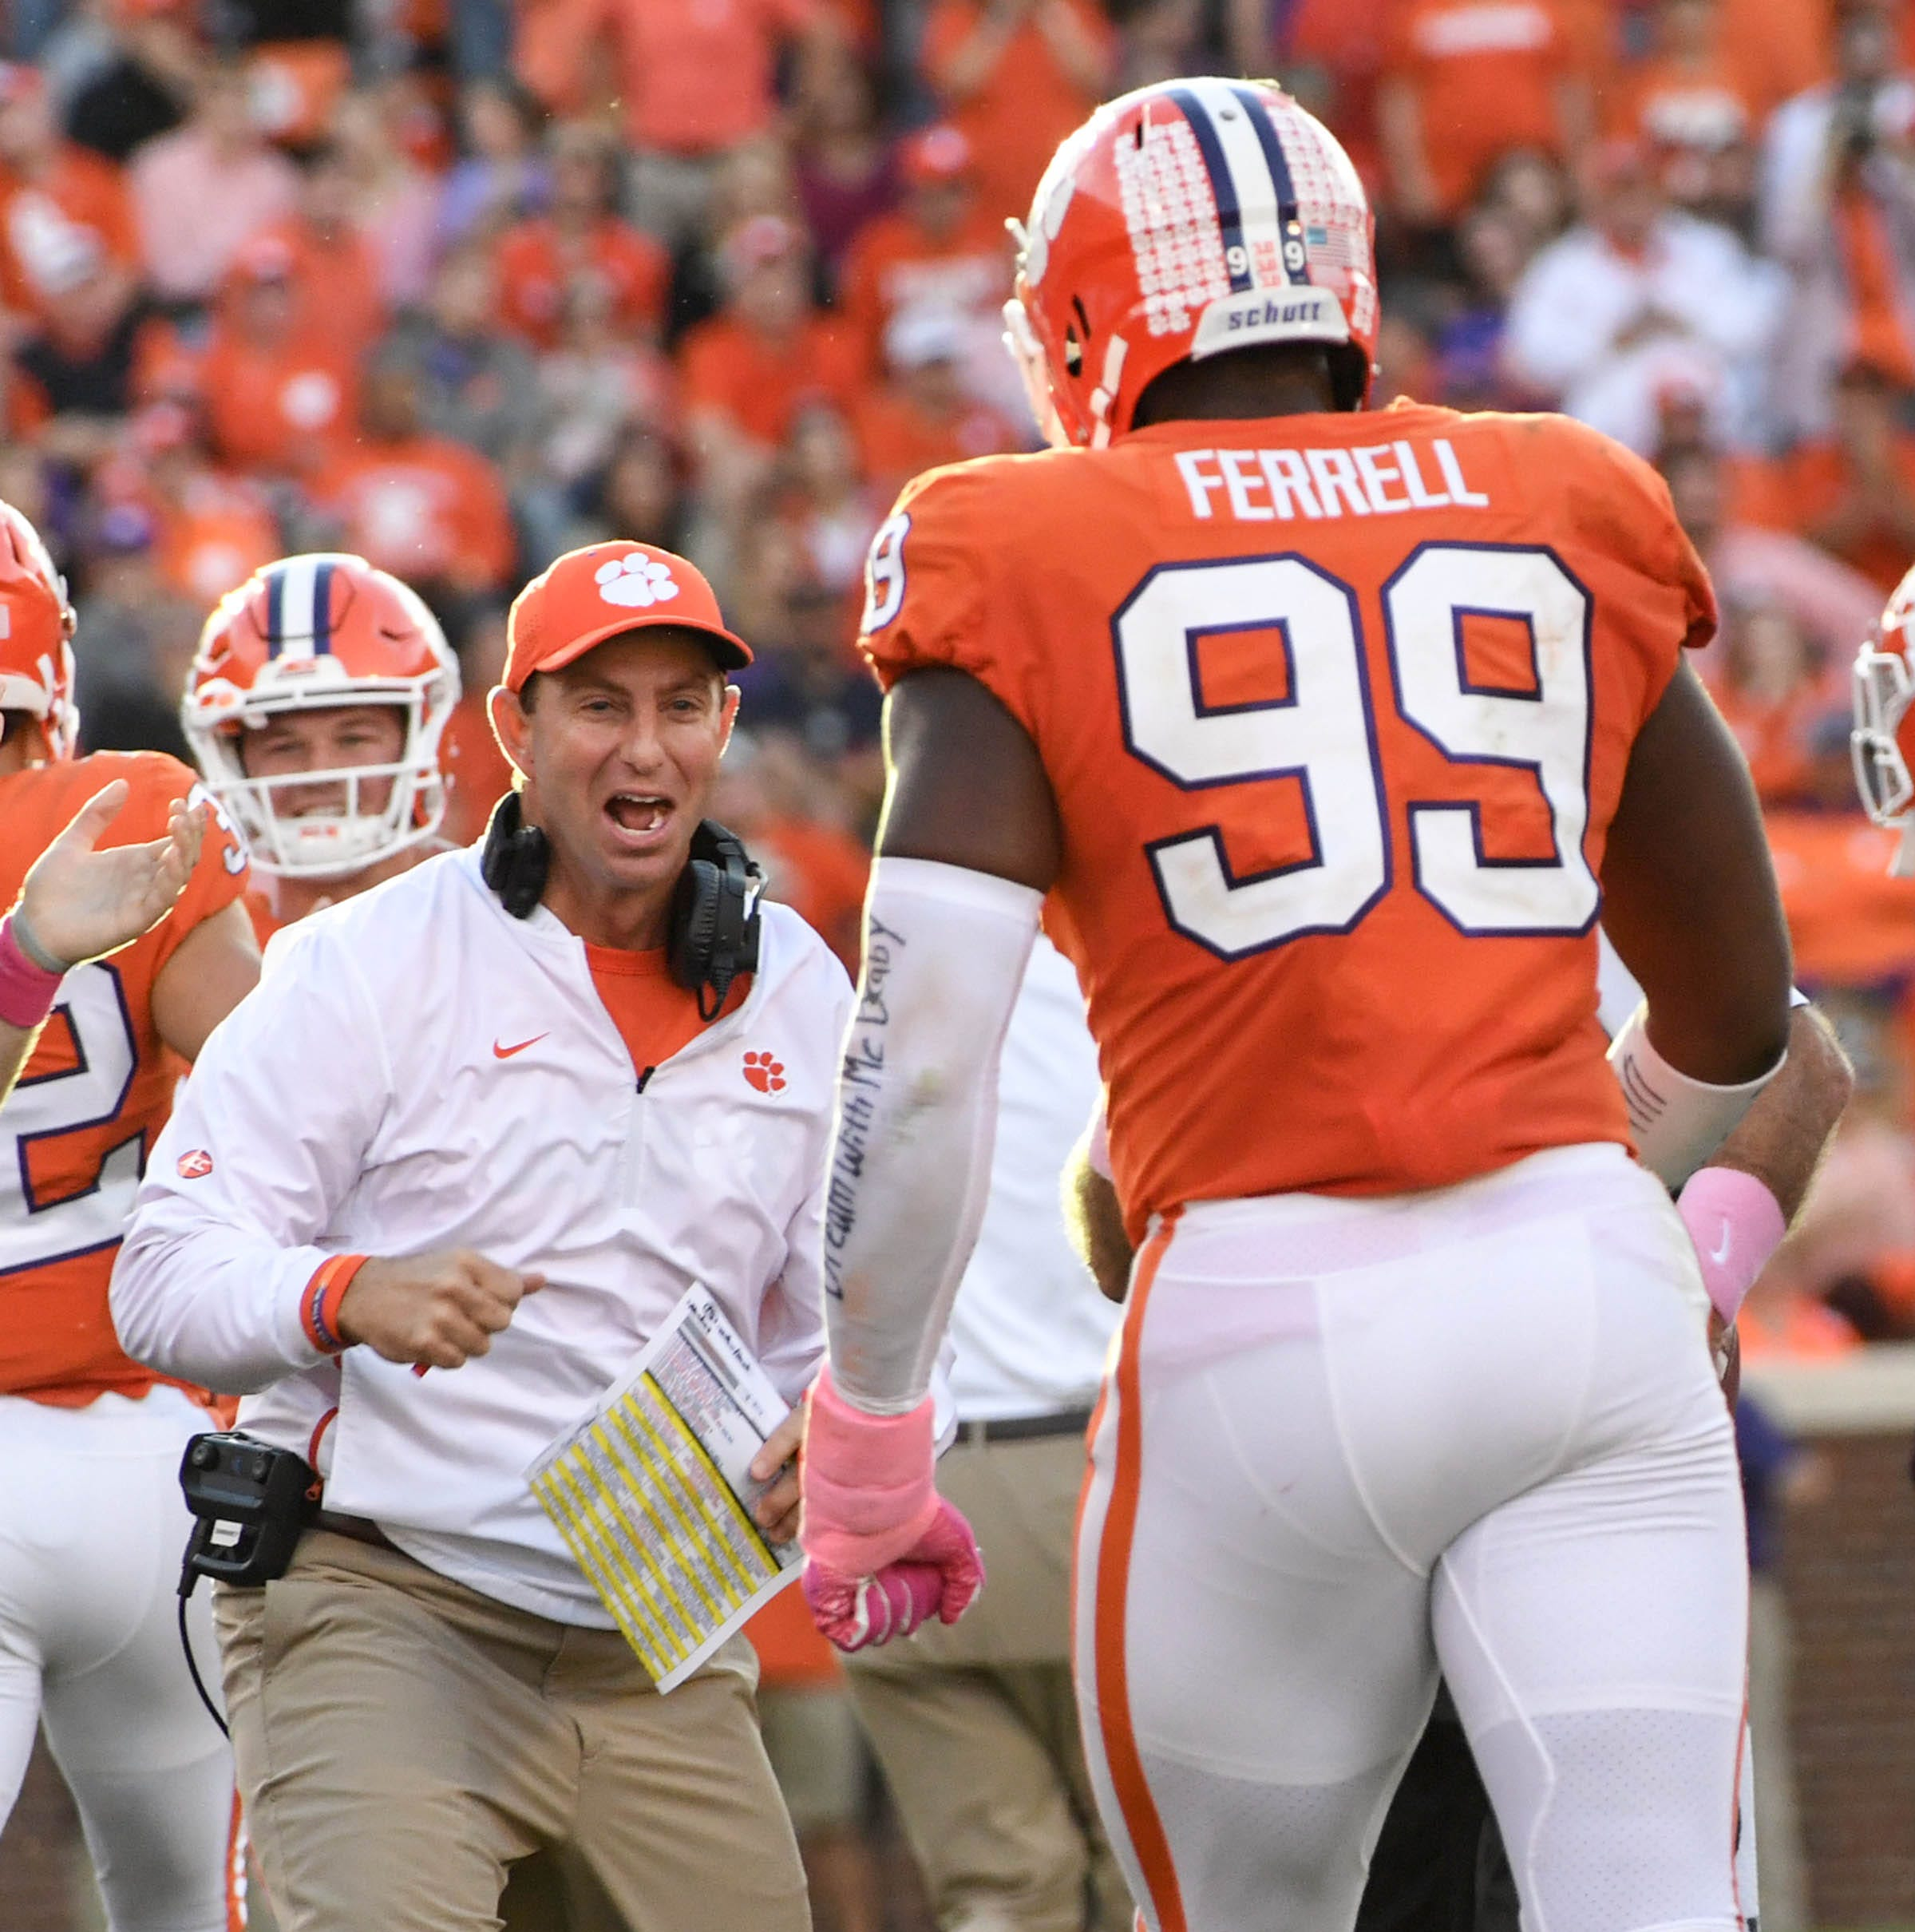 Blowout win, laptop gag show Clemson Tigers can dish it and take it